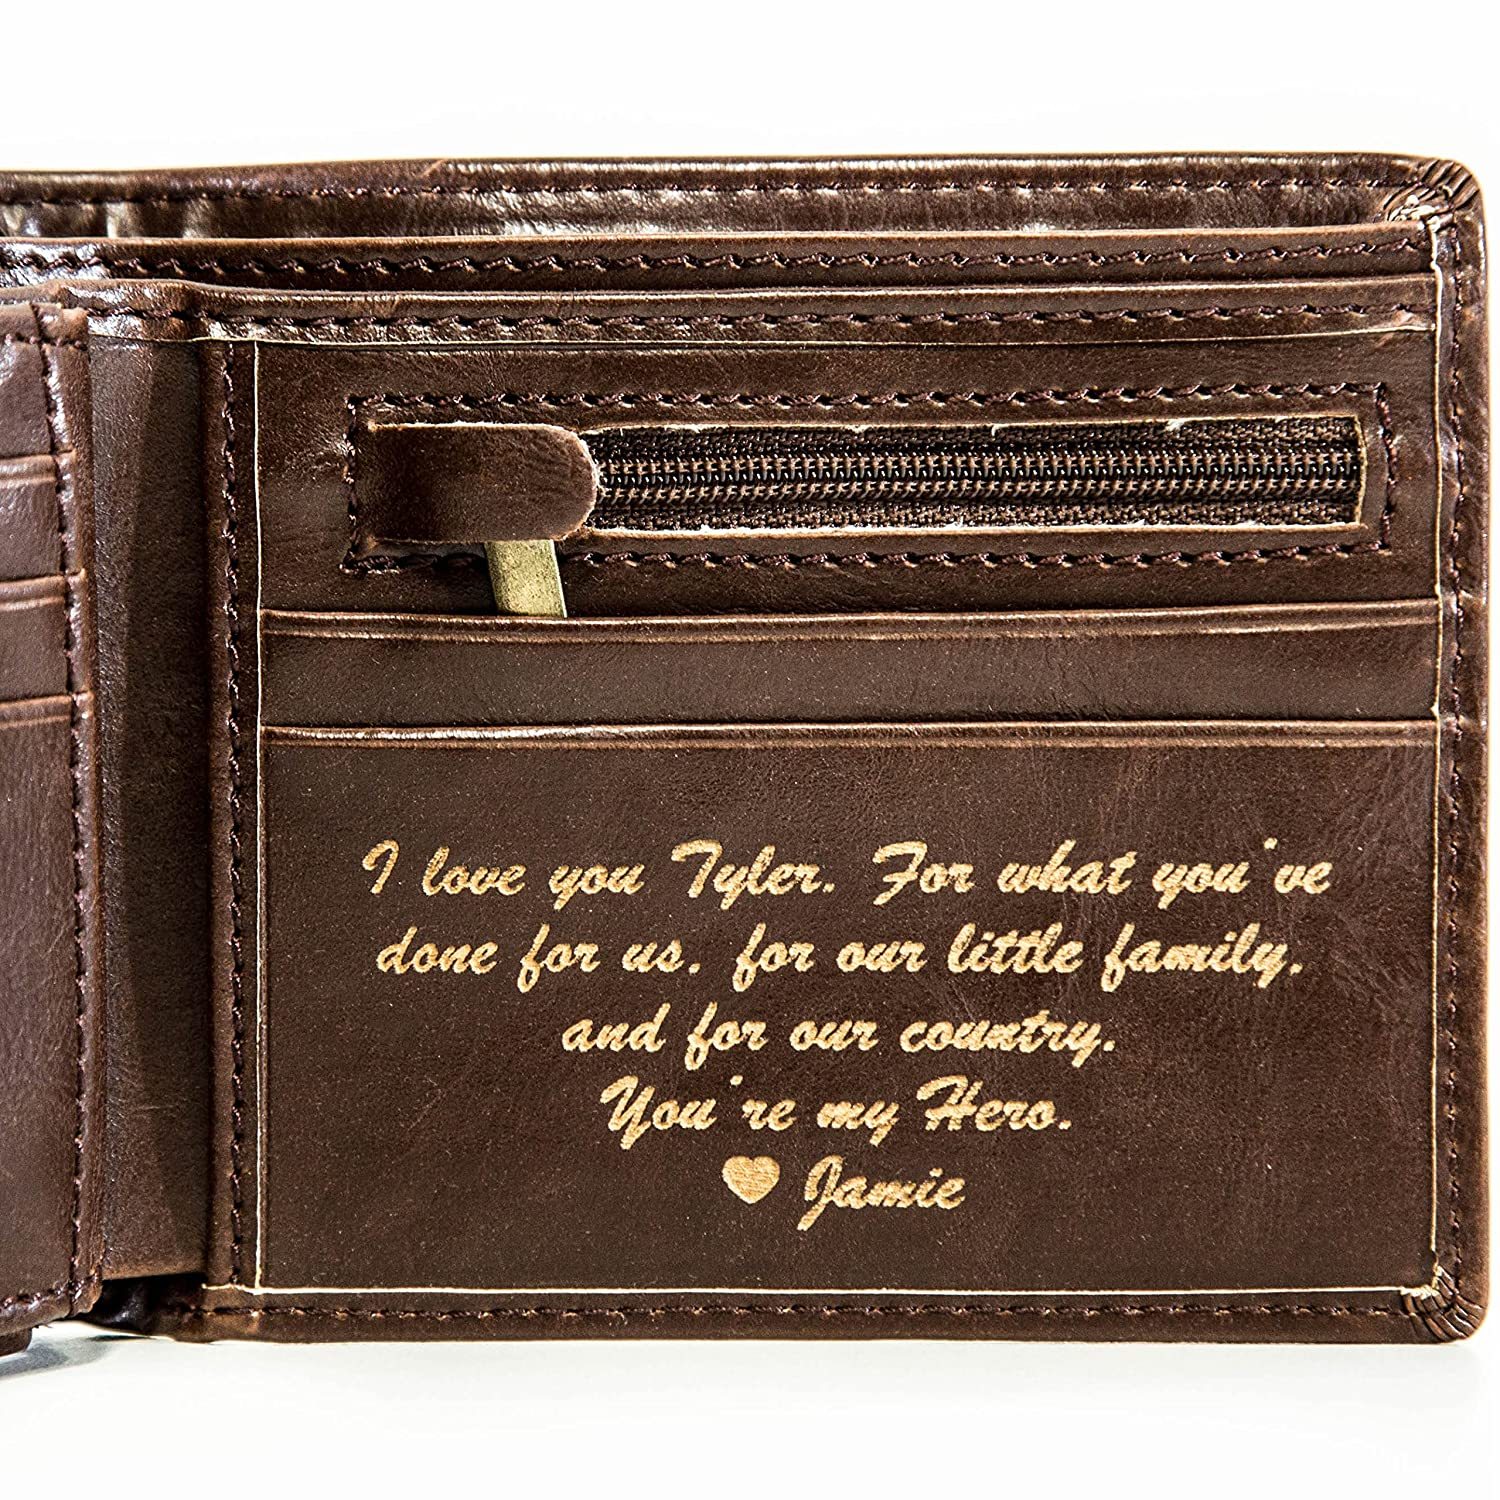 ccef990942b20 Personalized Mens Wallet - Leather Wallet